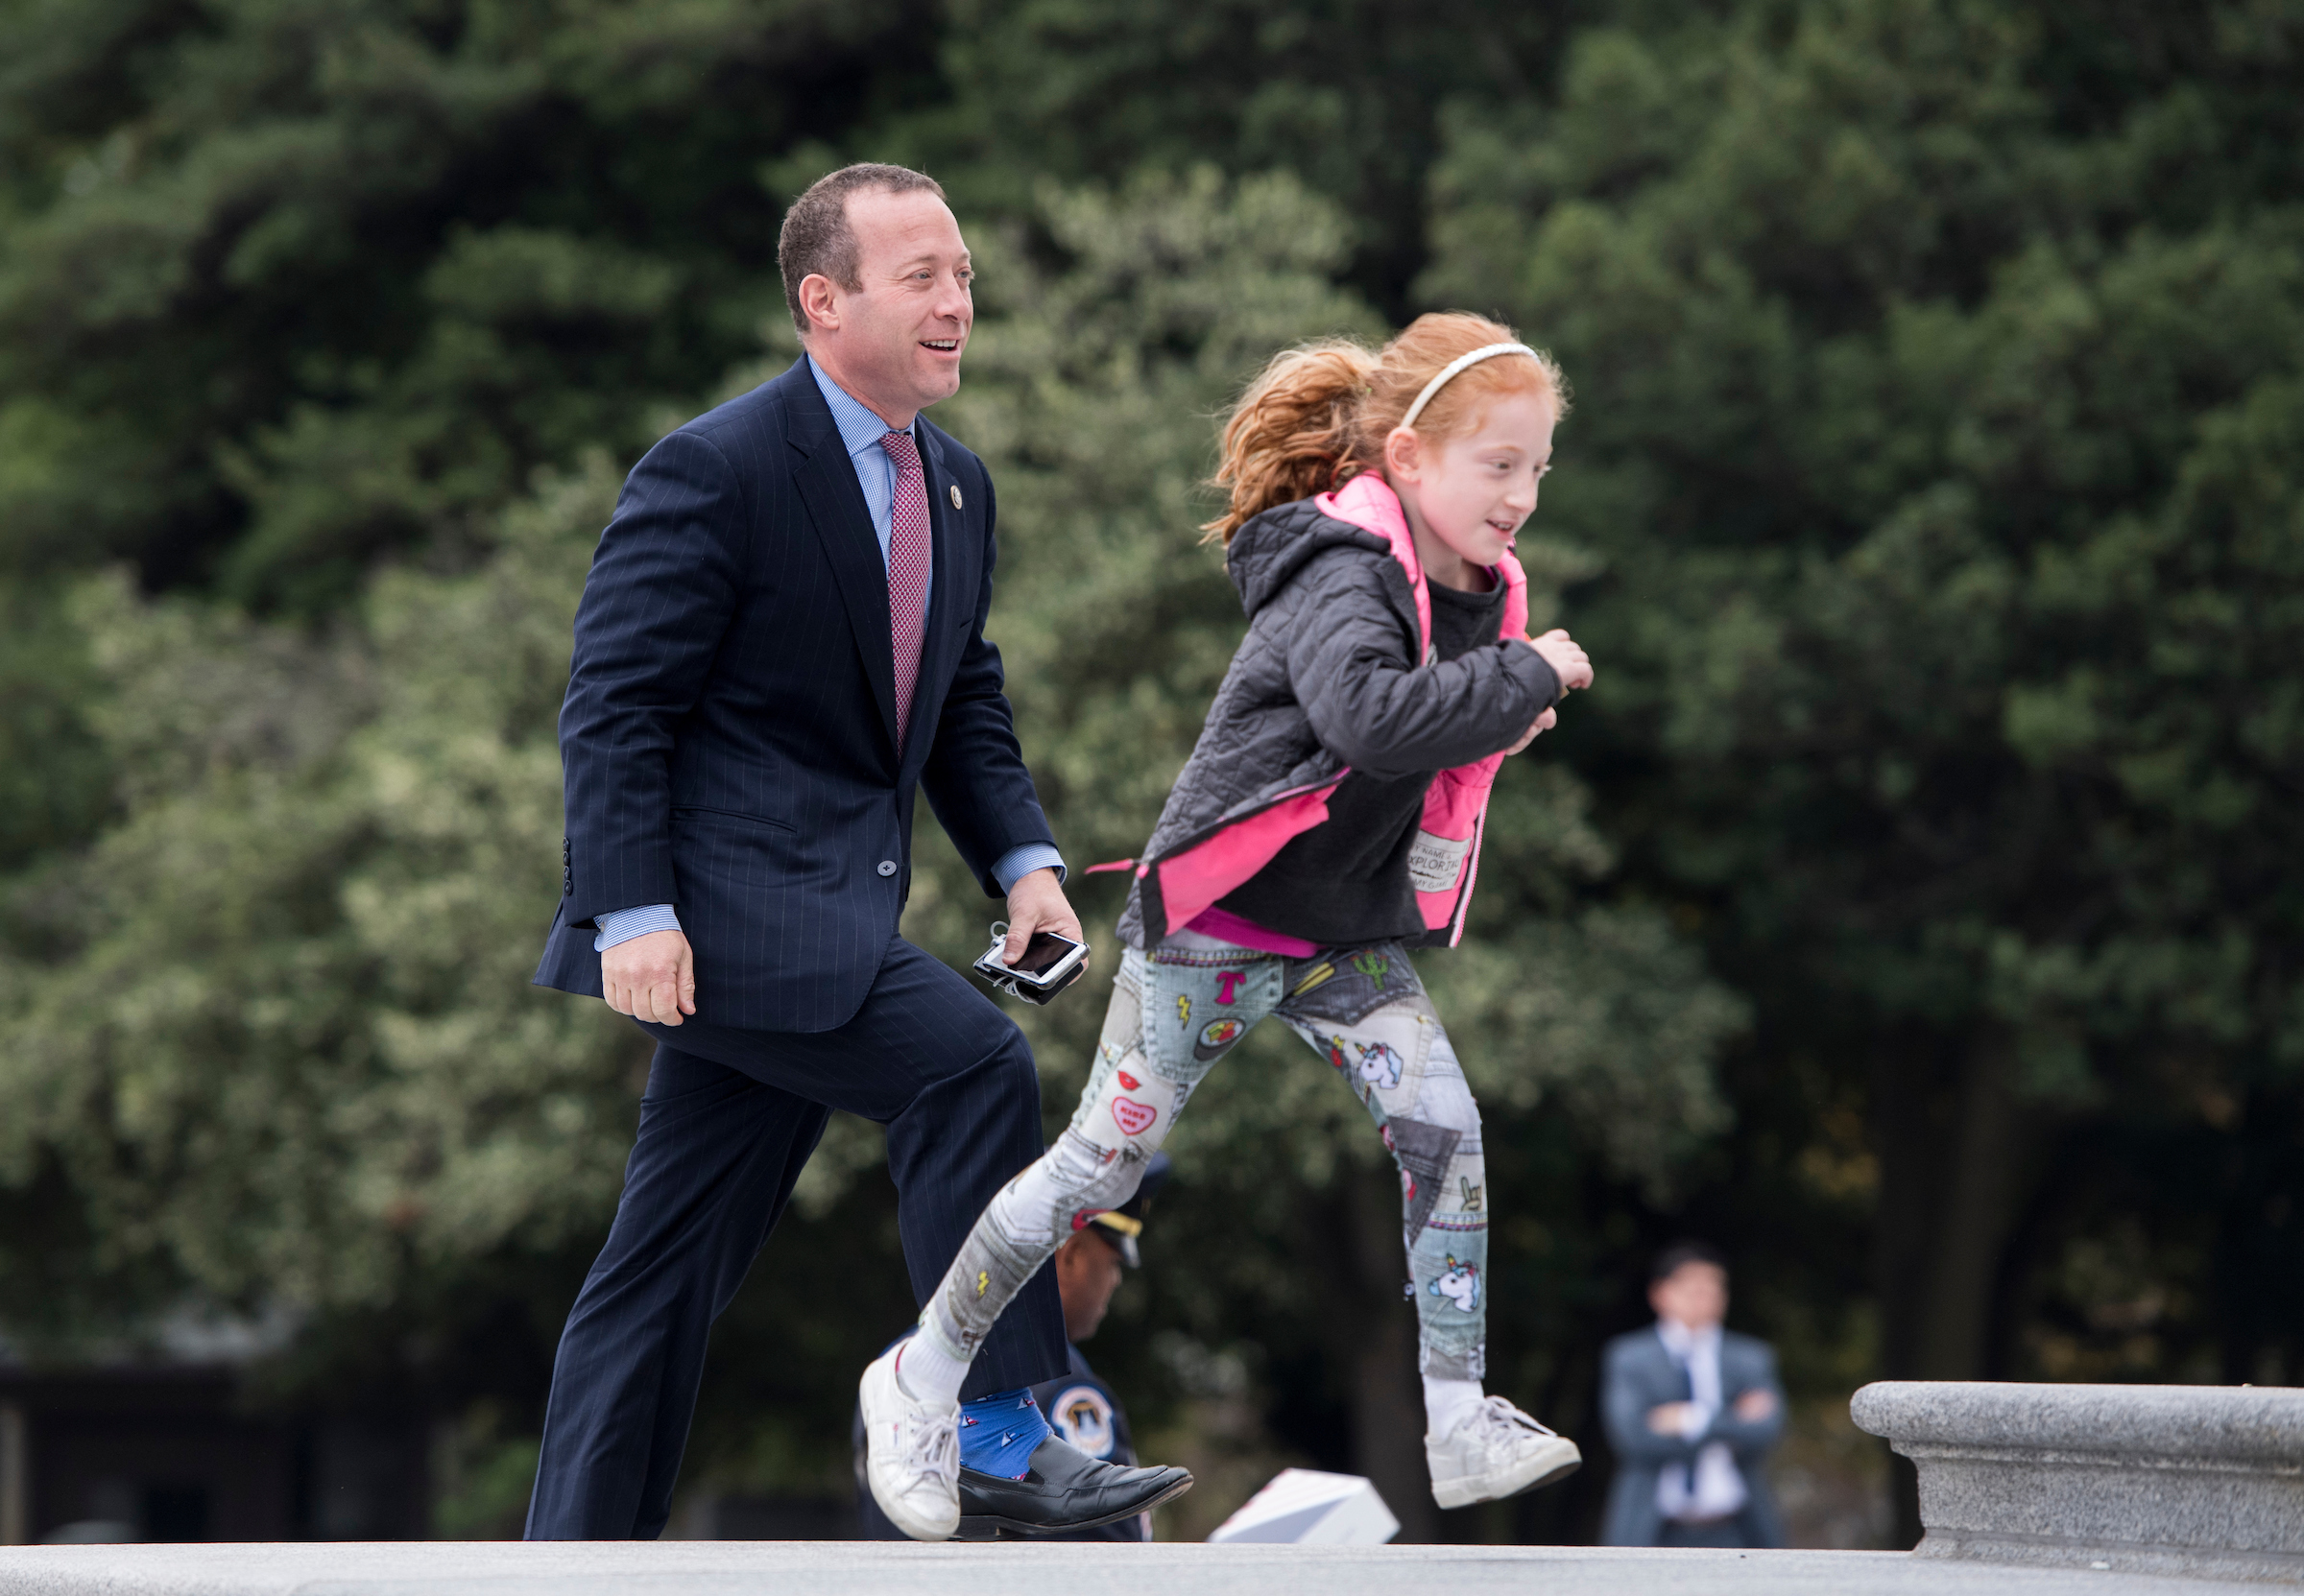 UNITED STATES - NOVEMBER 9: Rep. Josh Gottheimer, D-N.J., walks up the House steps with his daughter Ellie for a vote in the Capitol on Thursday, Nov. 9, 2017. (Photo By Bill Clark/CQ Roll Call)